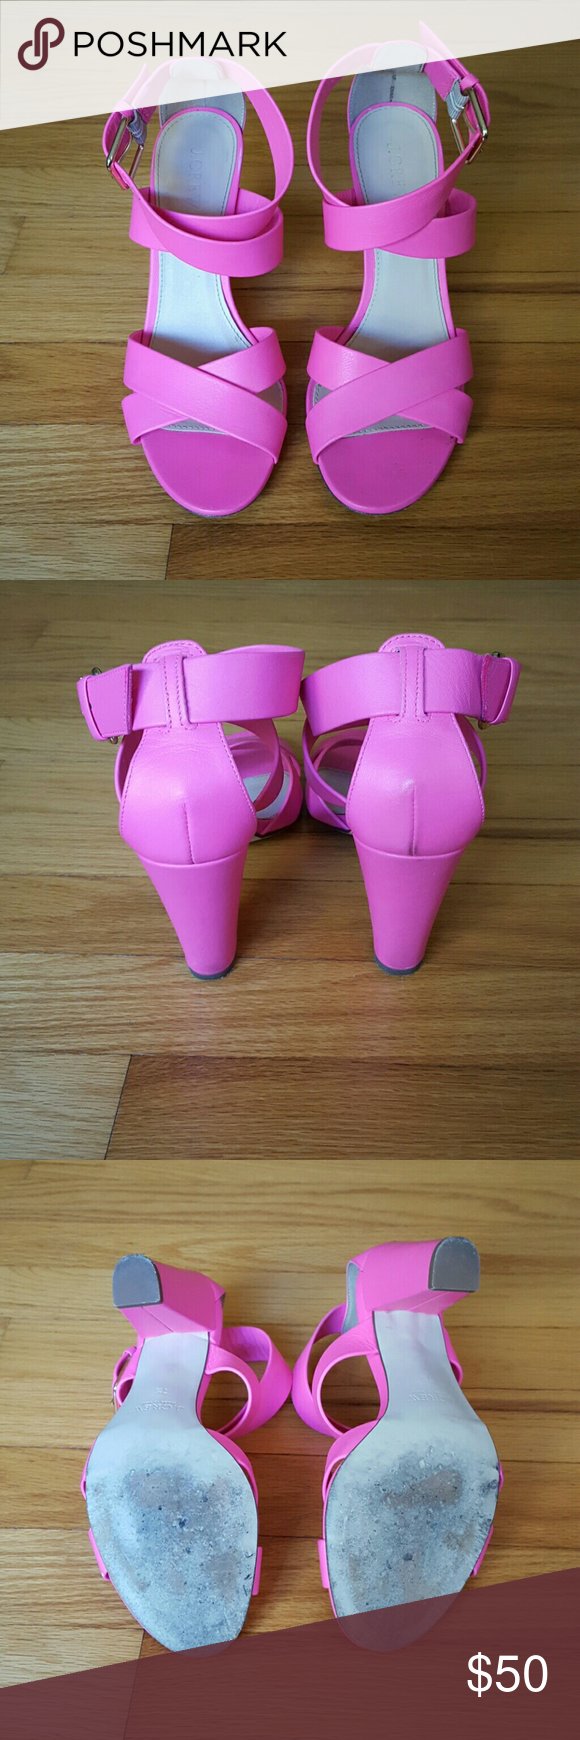 J.Crew hot pink strappy heels. Womens size 7 1/2 Gently worn J. Crew hot pink strappy heels in size 7 1/2. Small scuff on the back of right heel (see 4th picture) and small scuffing on bottom of heels from normal wearing. Heel height is 3 3/4 inches. J. Crew Shoes Sandals